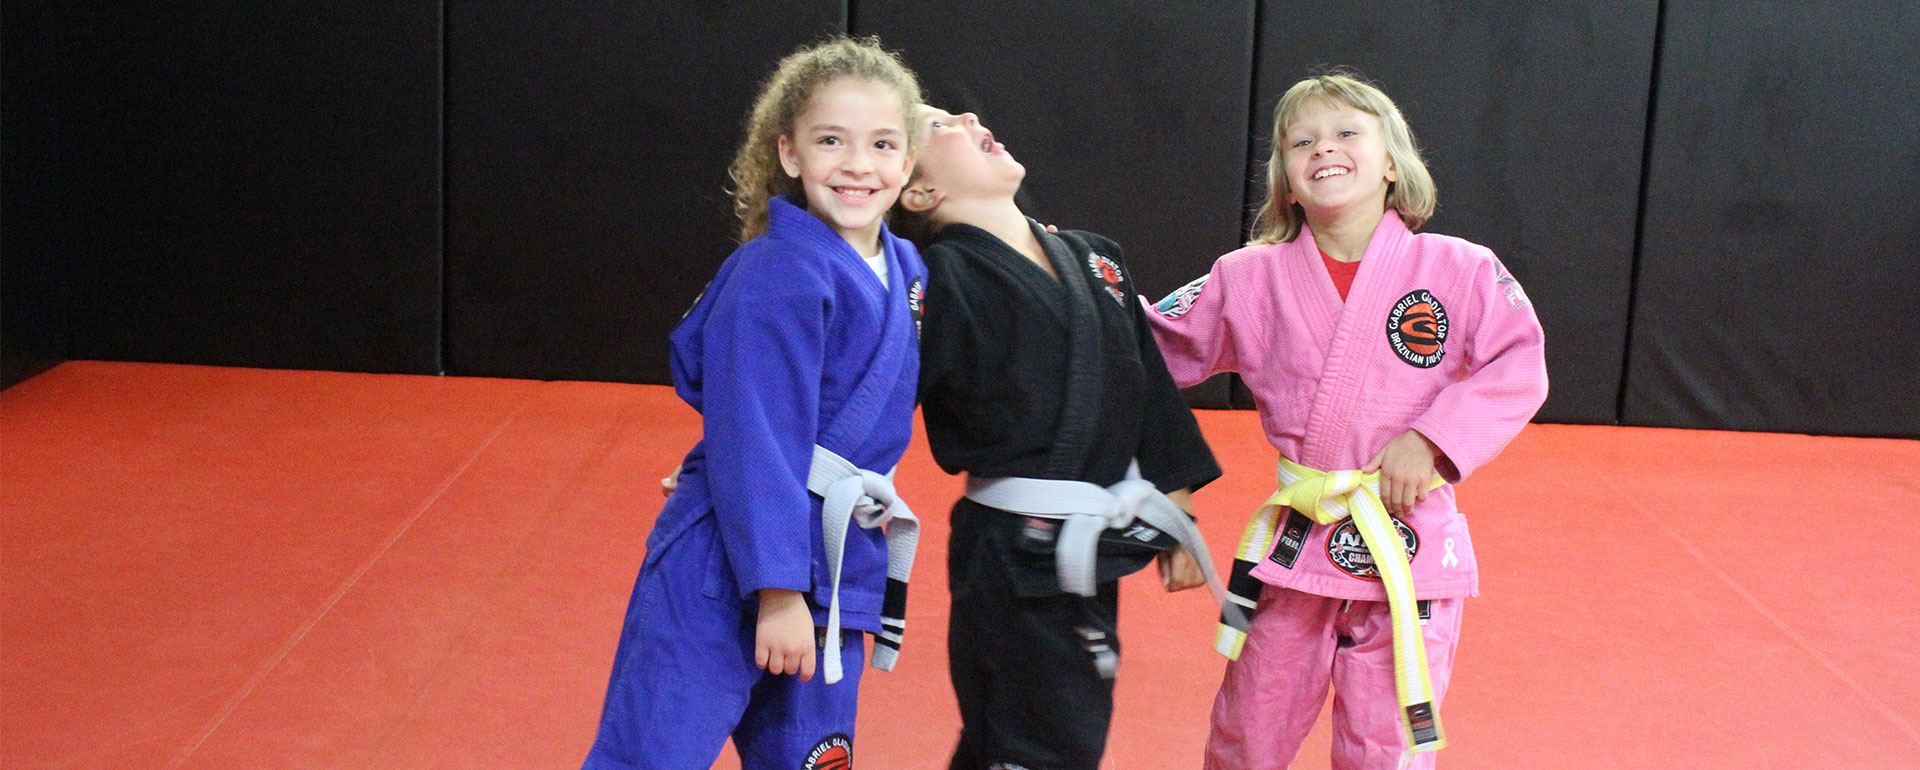 Gladiator Kids BJJ Program